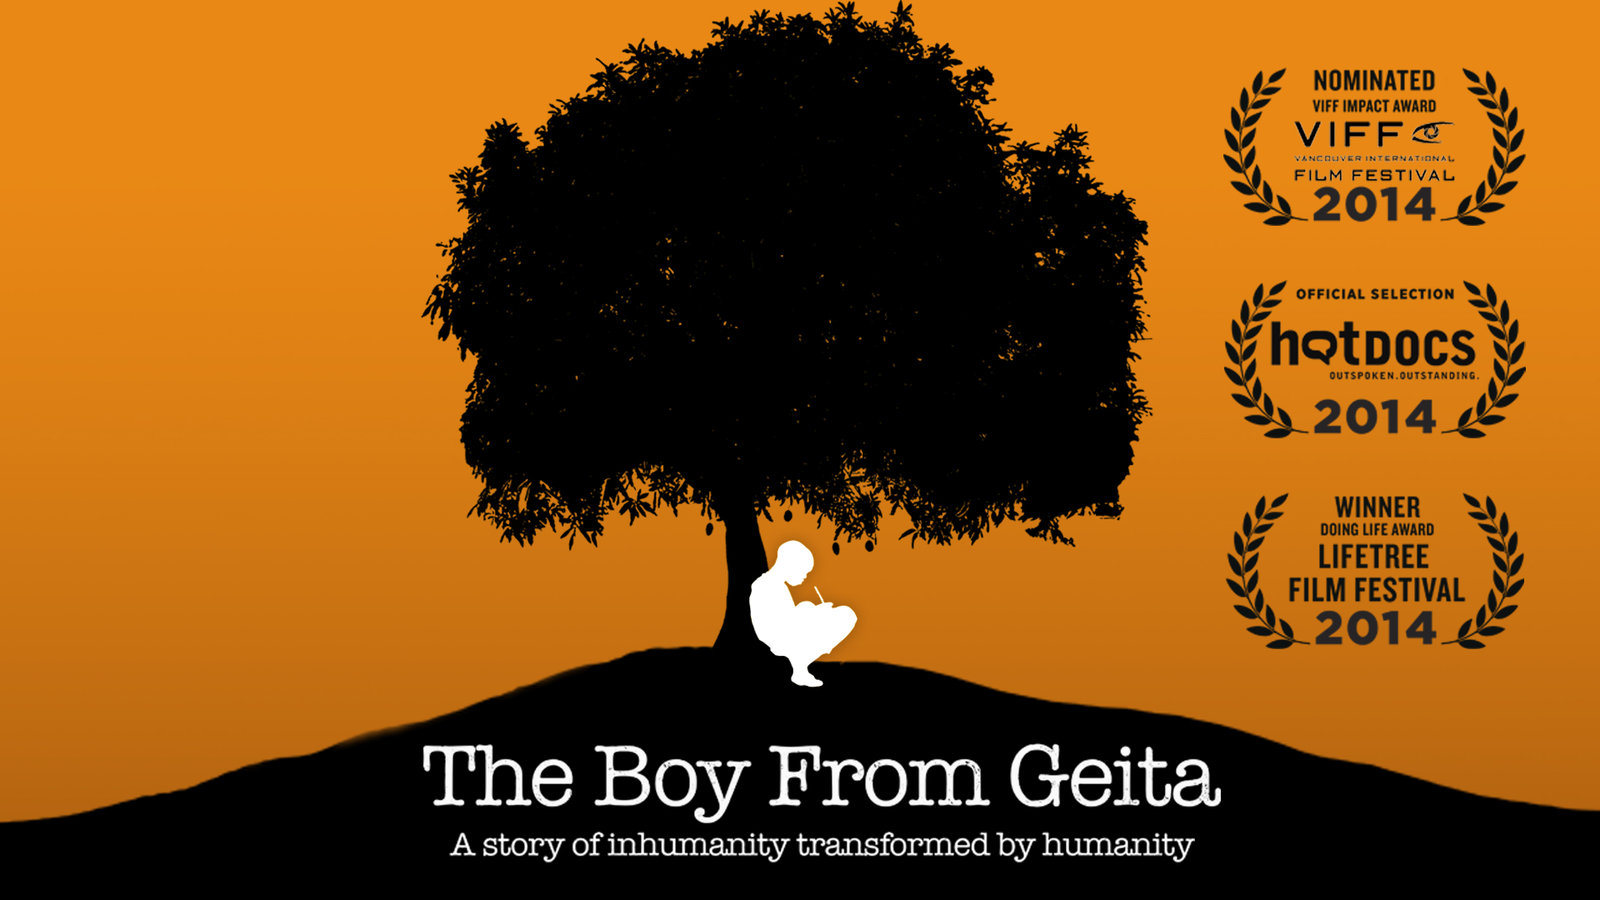 The Boy From Geita - An Albino in Africa